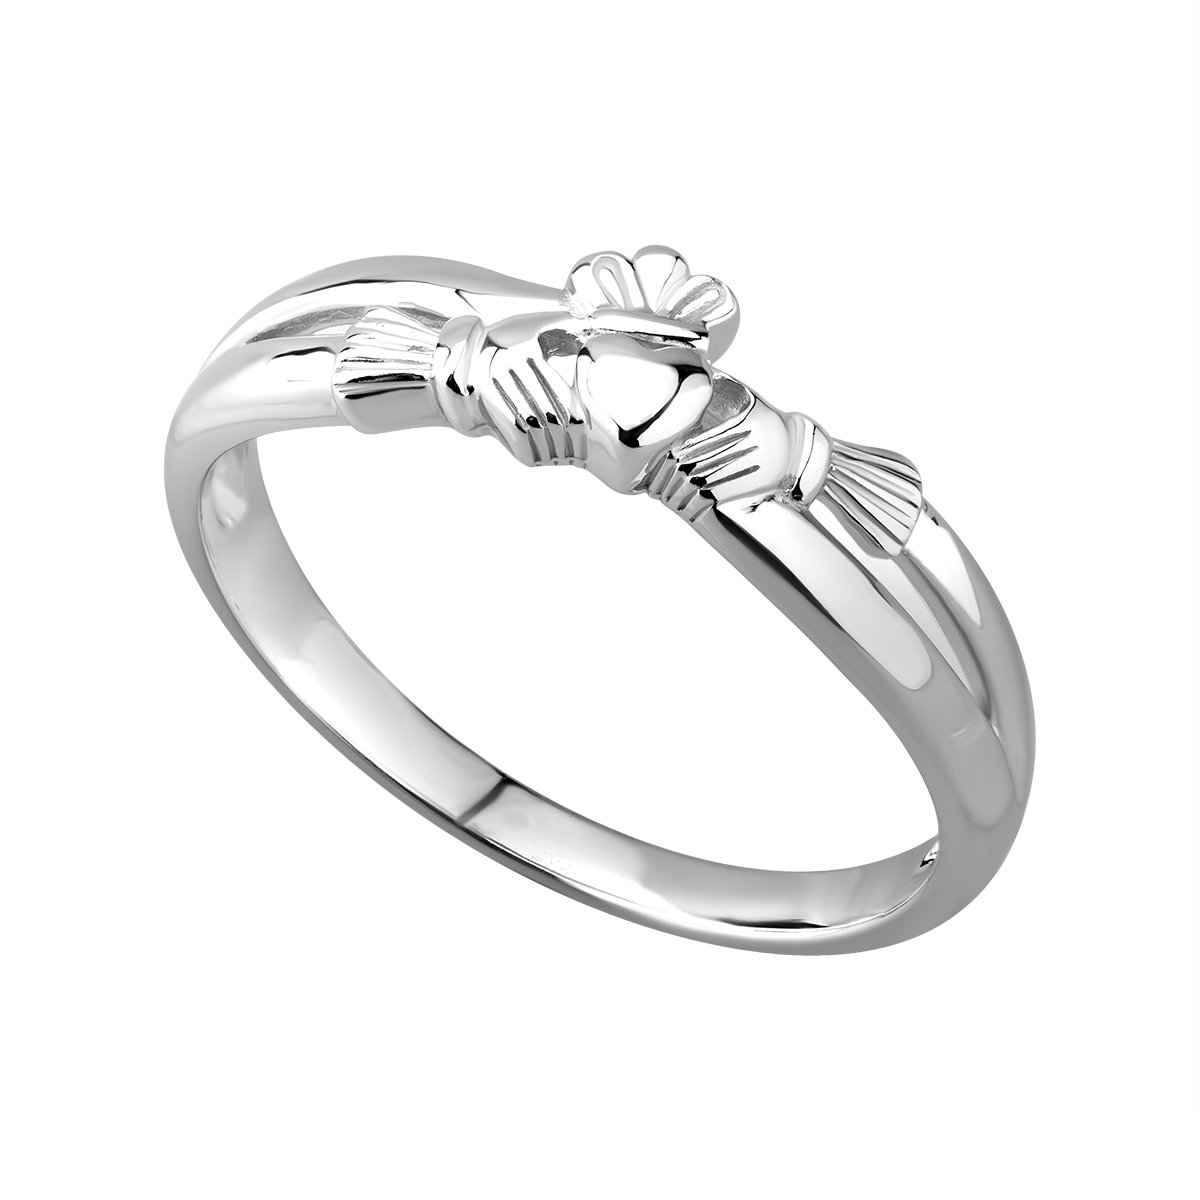 sterling silver claddagh kiss ring s2750 from Solvar